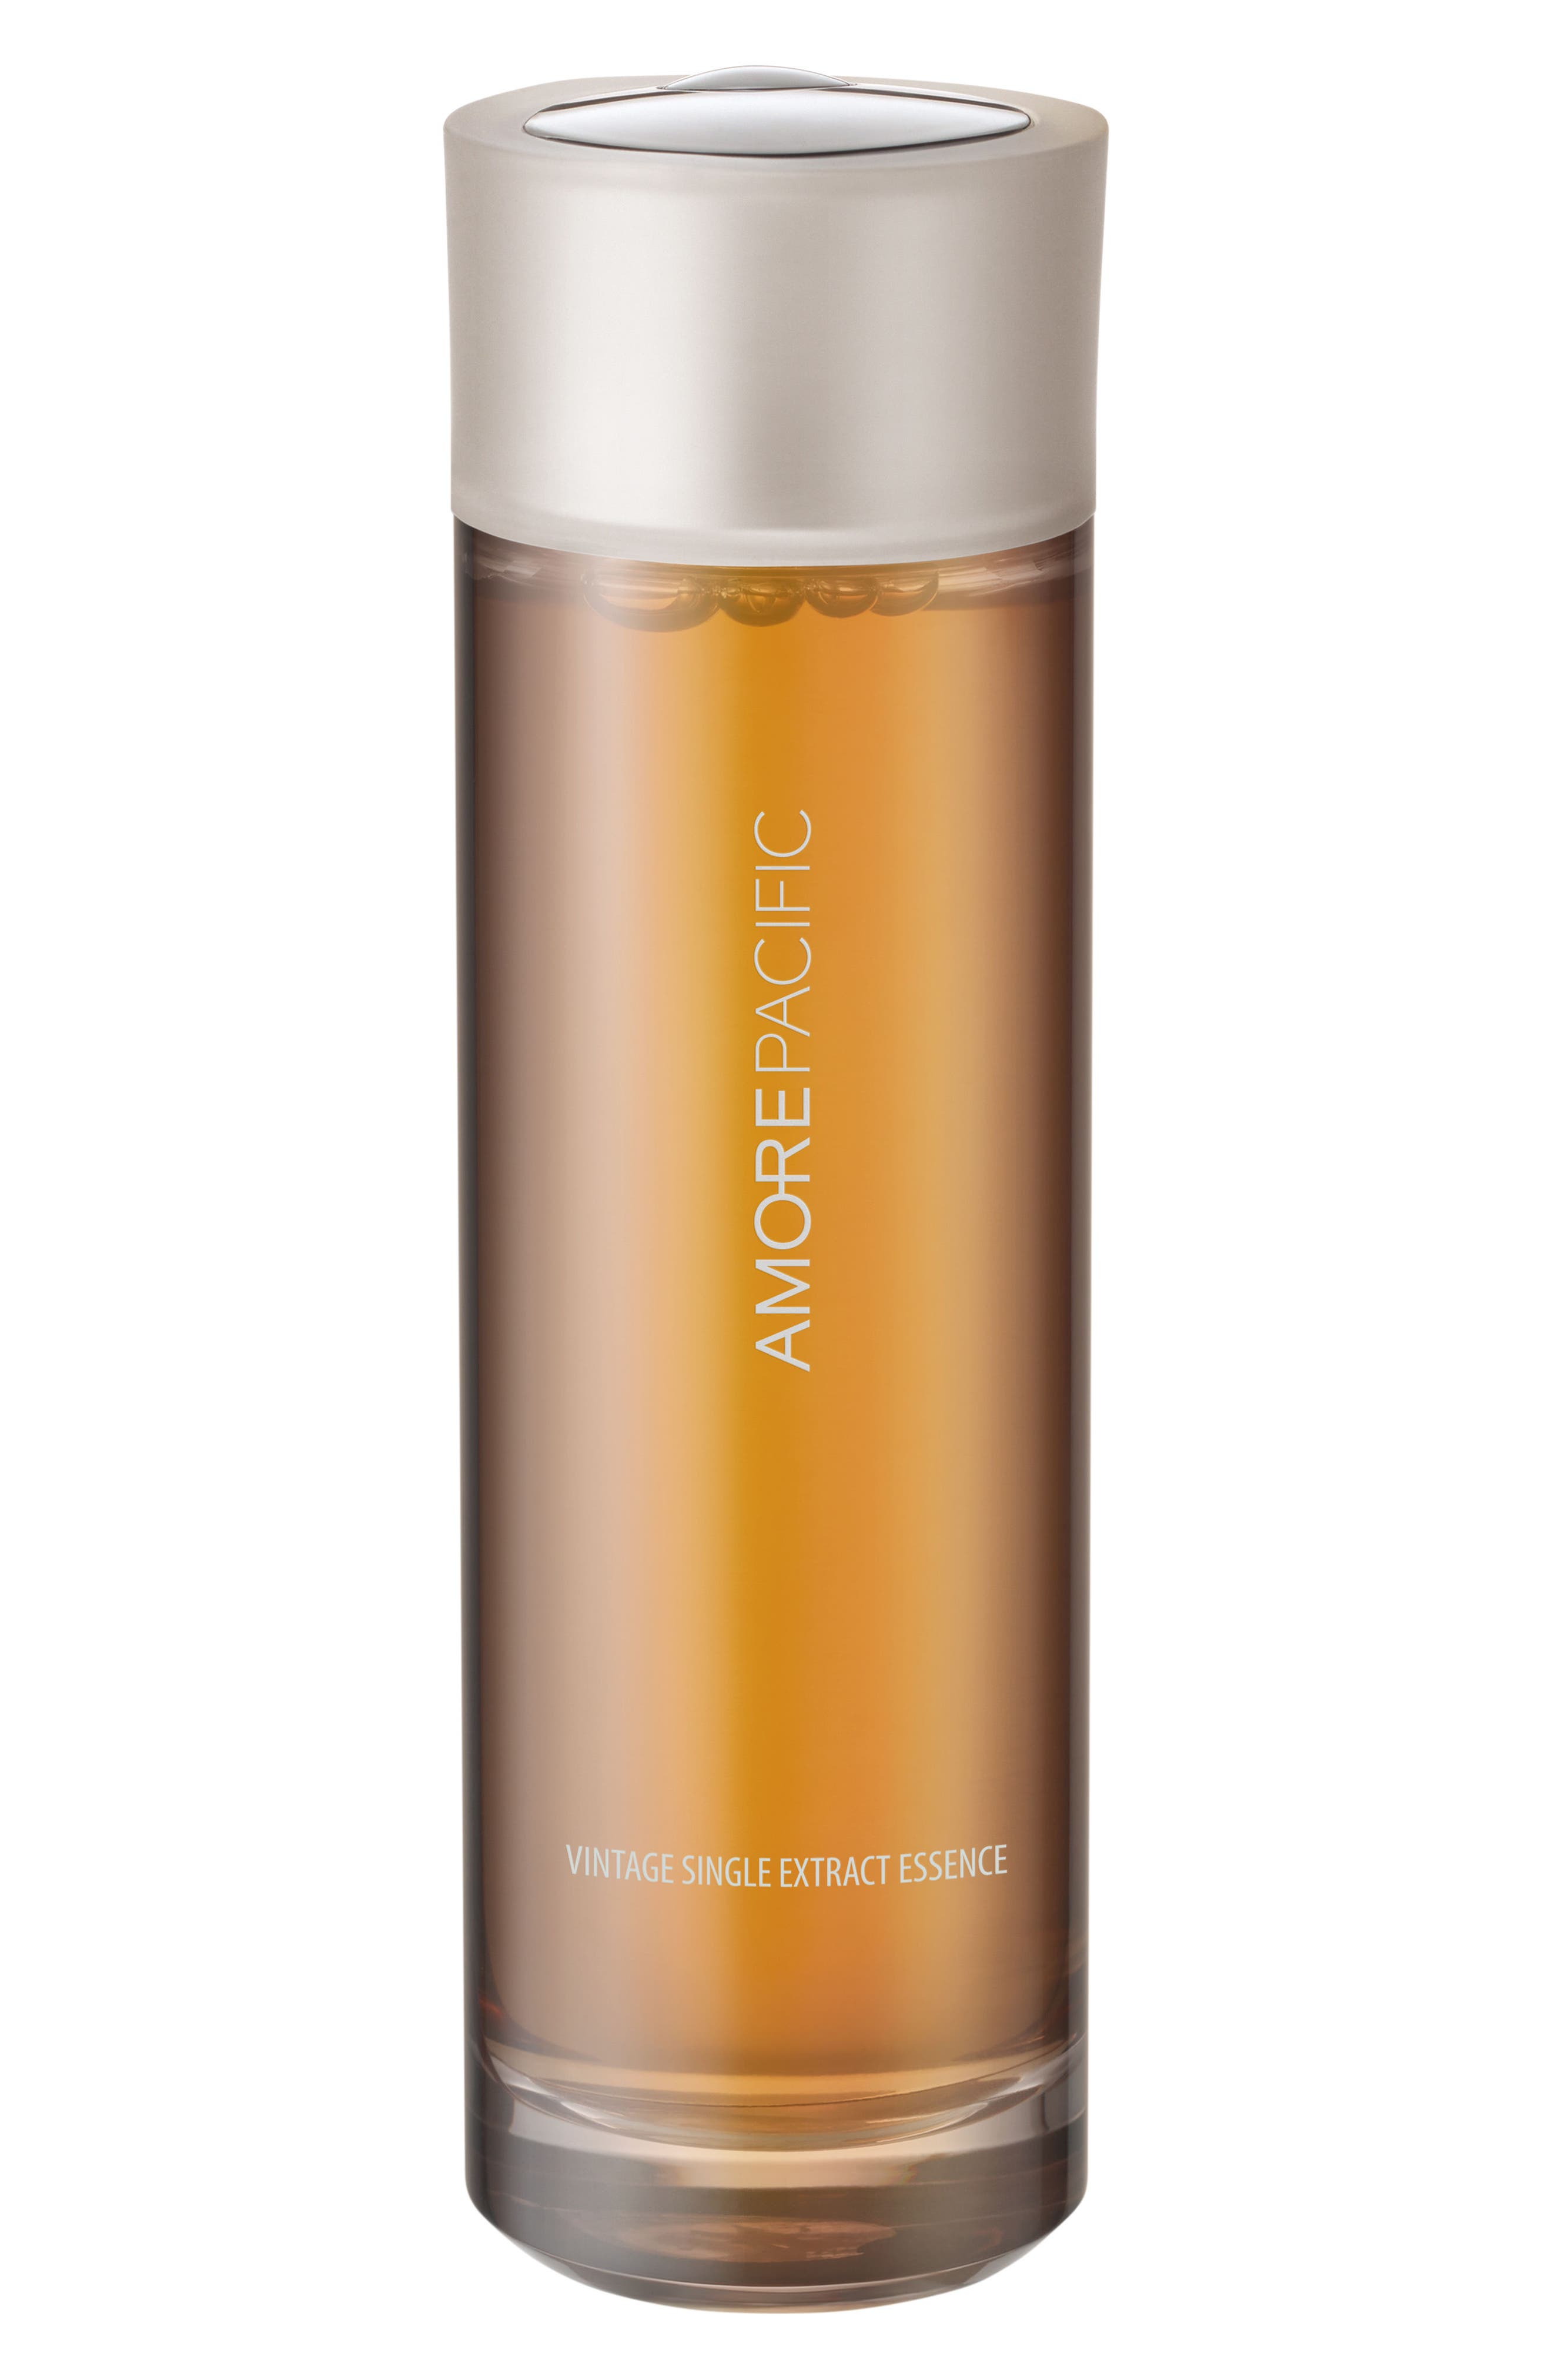 Main Image - AMOREPACIFIC Vintage Single Extract Essence (Nordstrom Exclusive)